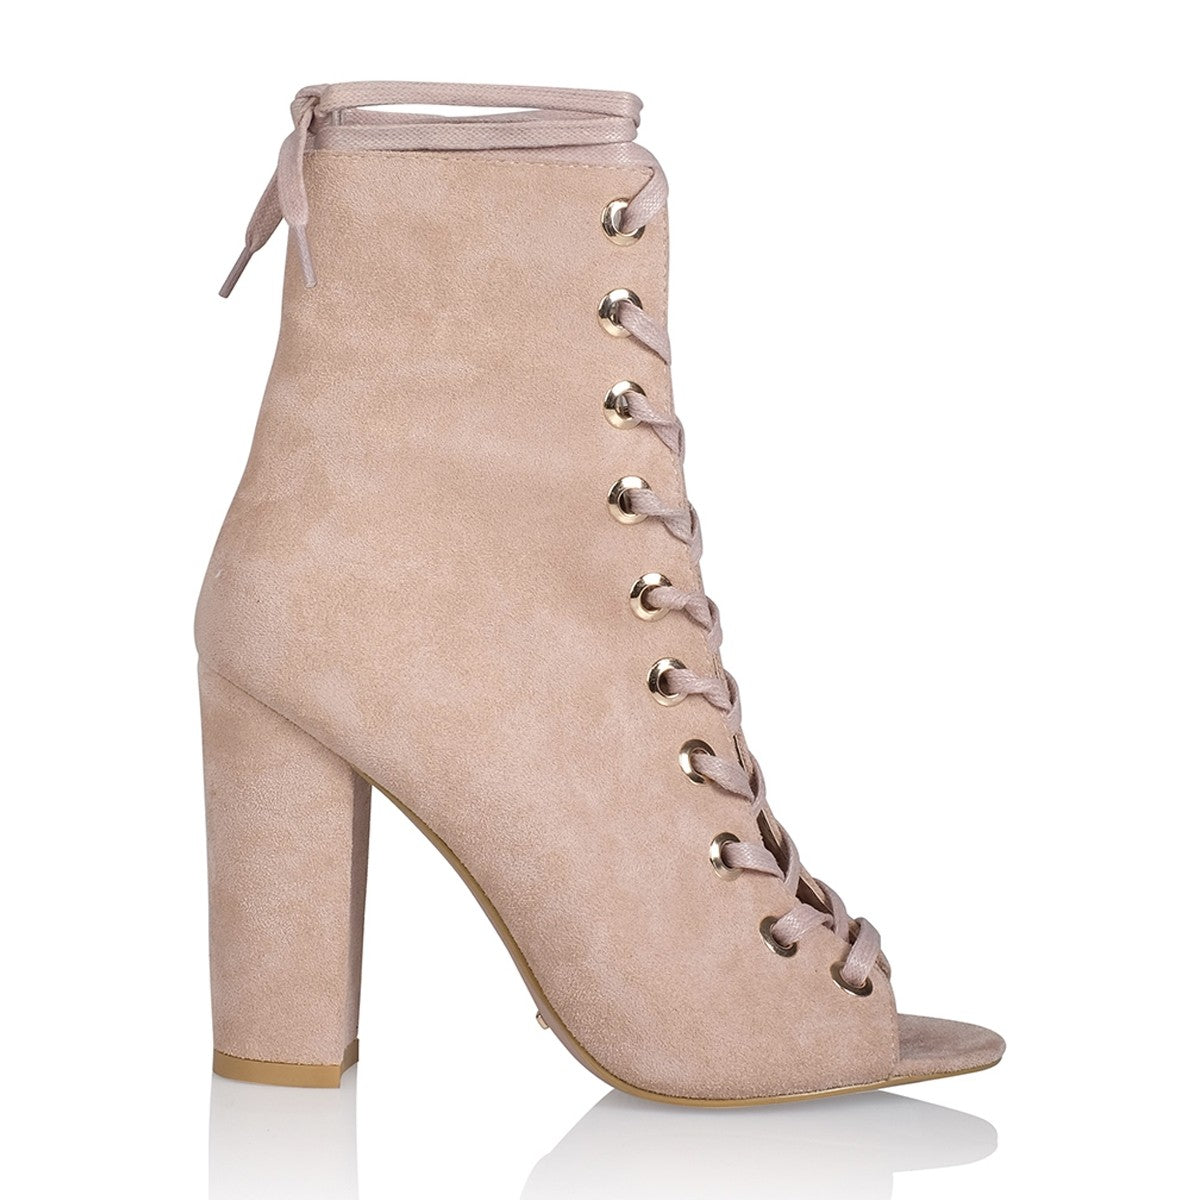 Brinnie Boots Blush Suede